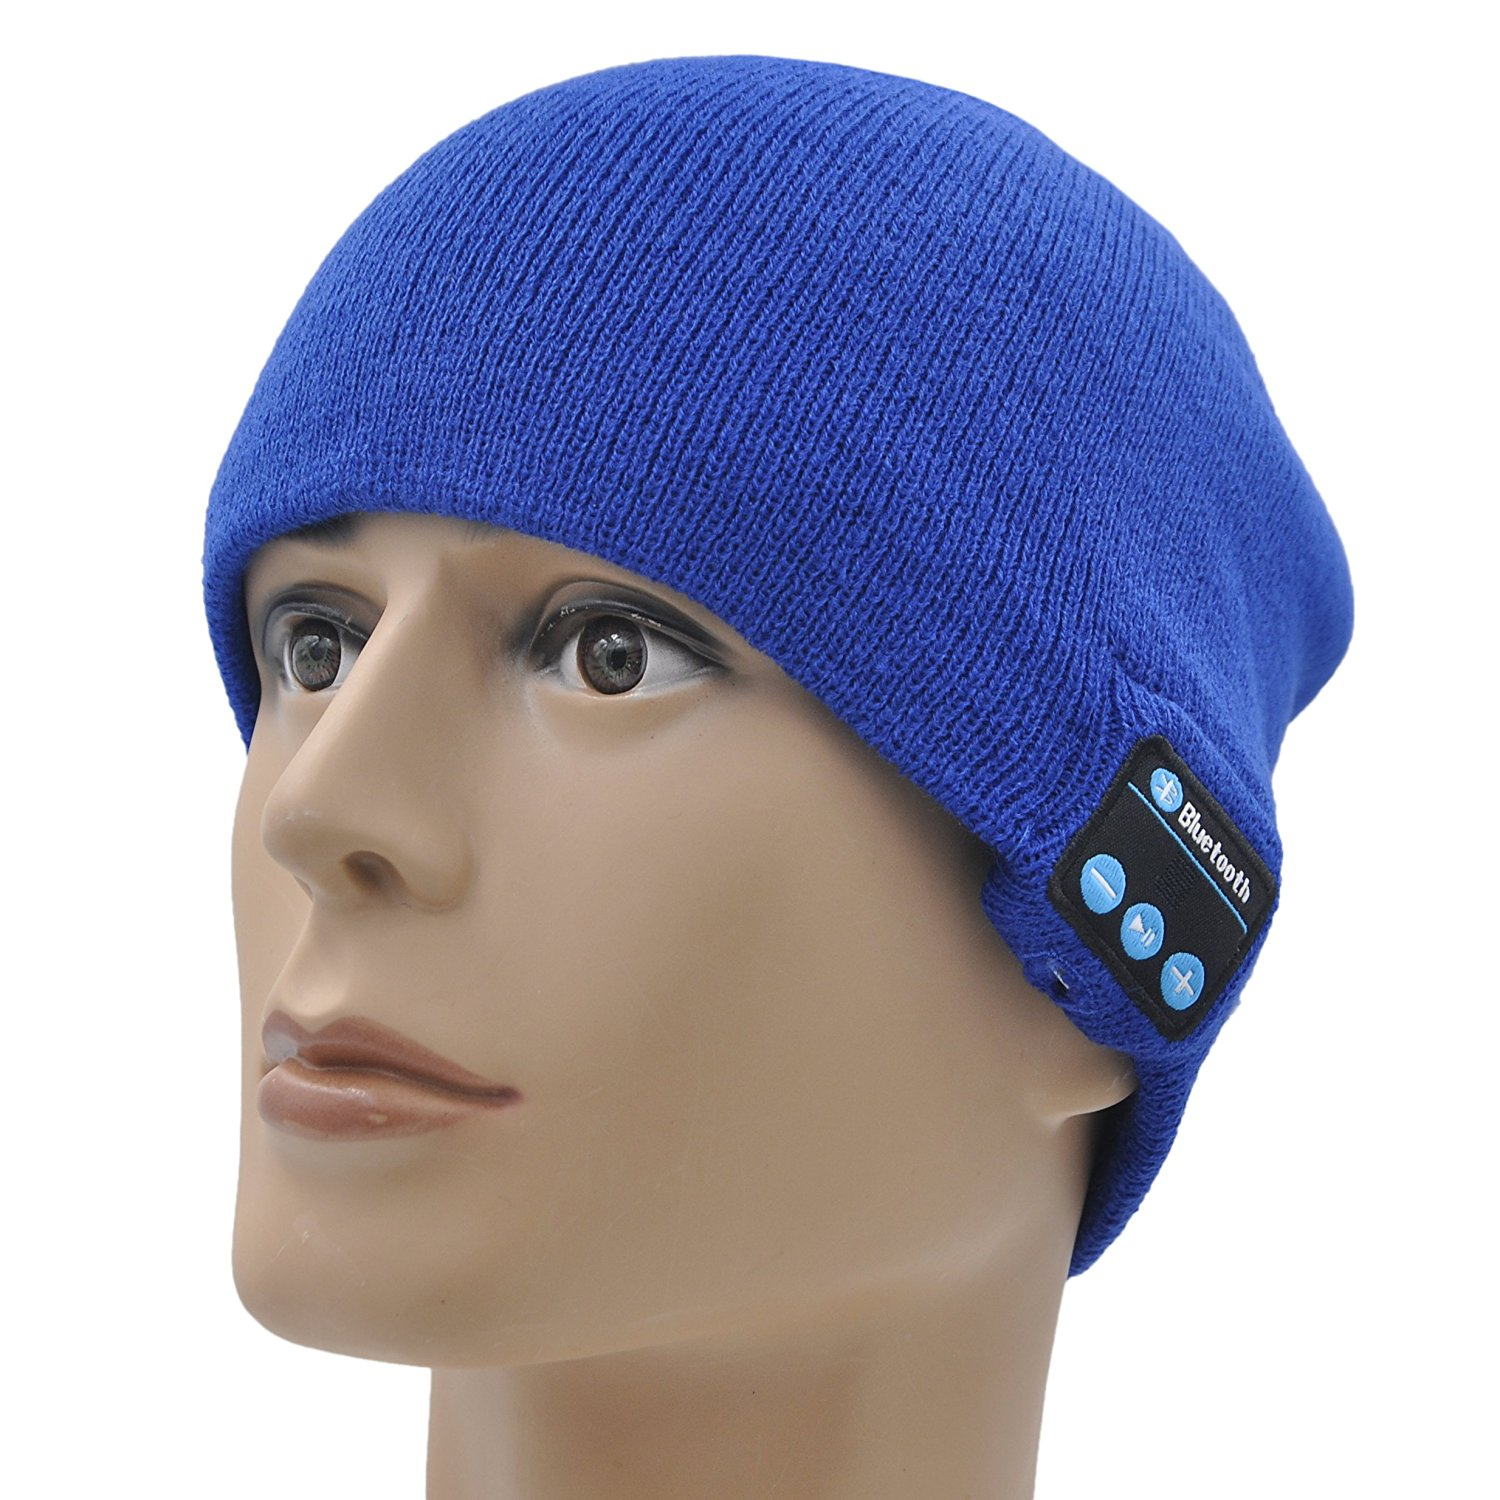 7c2bc358745 Get Quotations · XIKEZAN Bluetooth Beanie Hat Wireless Men   Women Knit  Winter Cap With Built- in Stereo